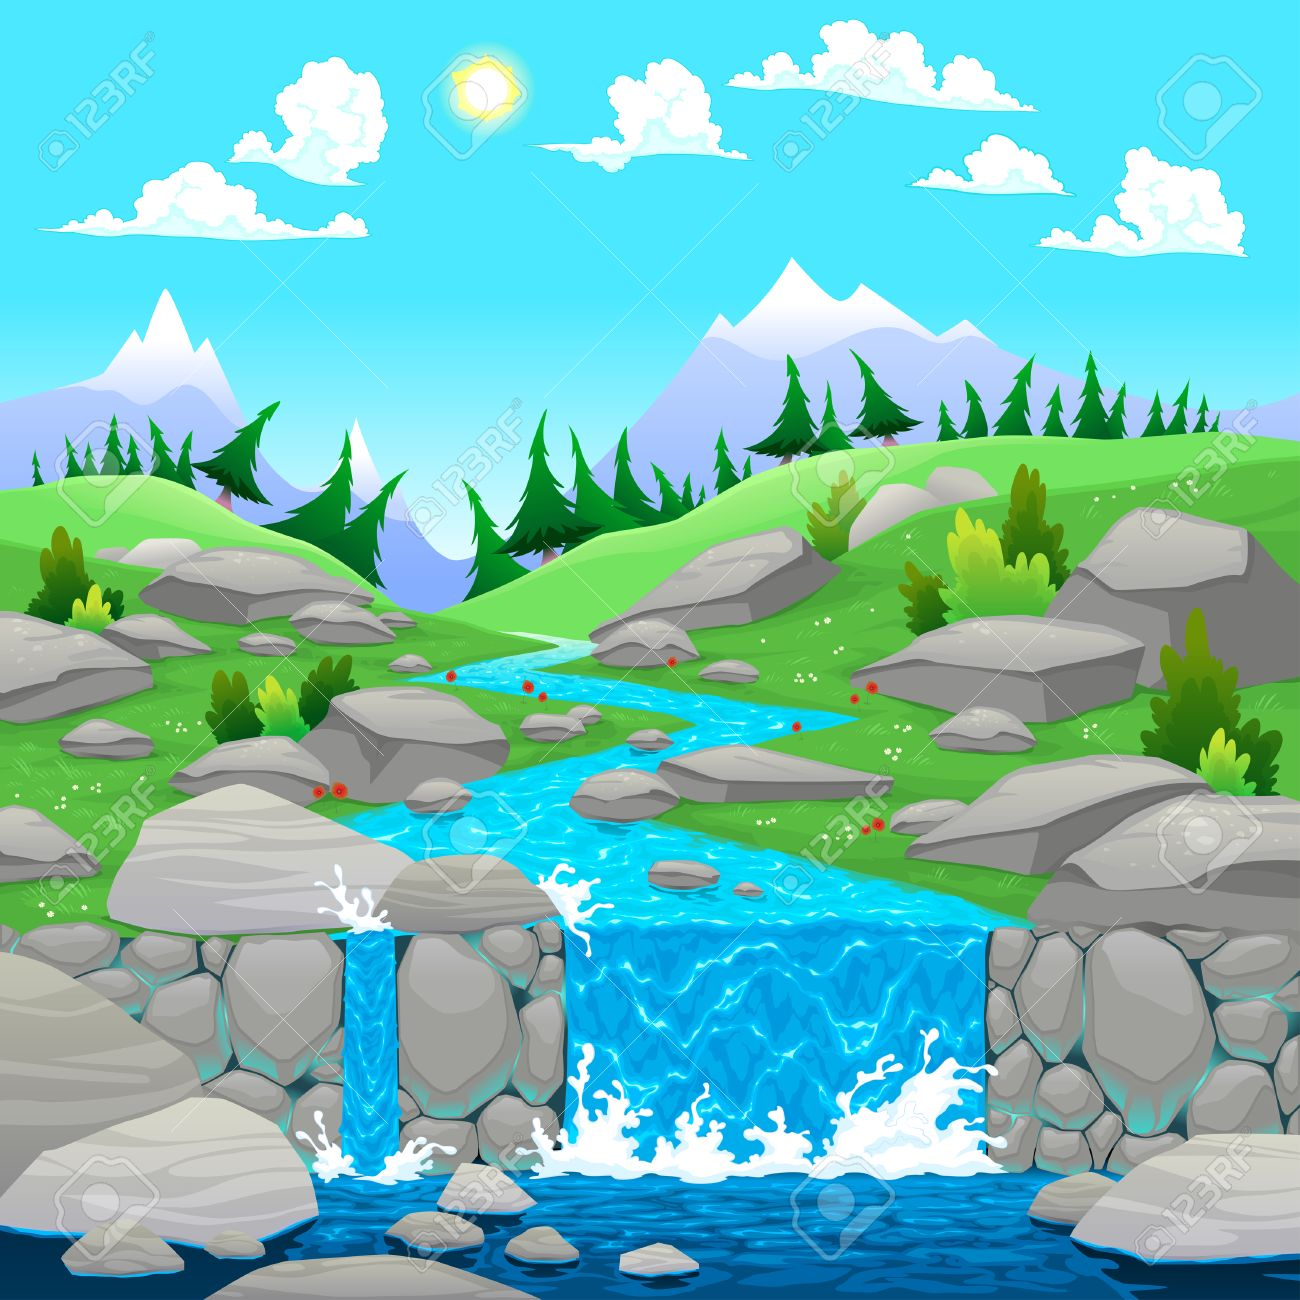 Mountain landscape with river. Cartoon and vector illustration - 23039753